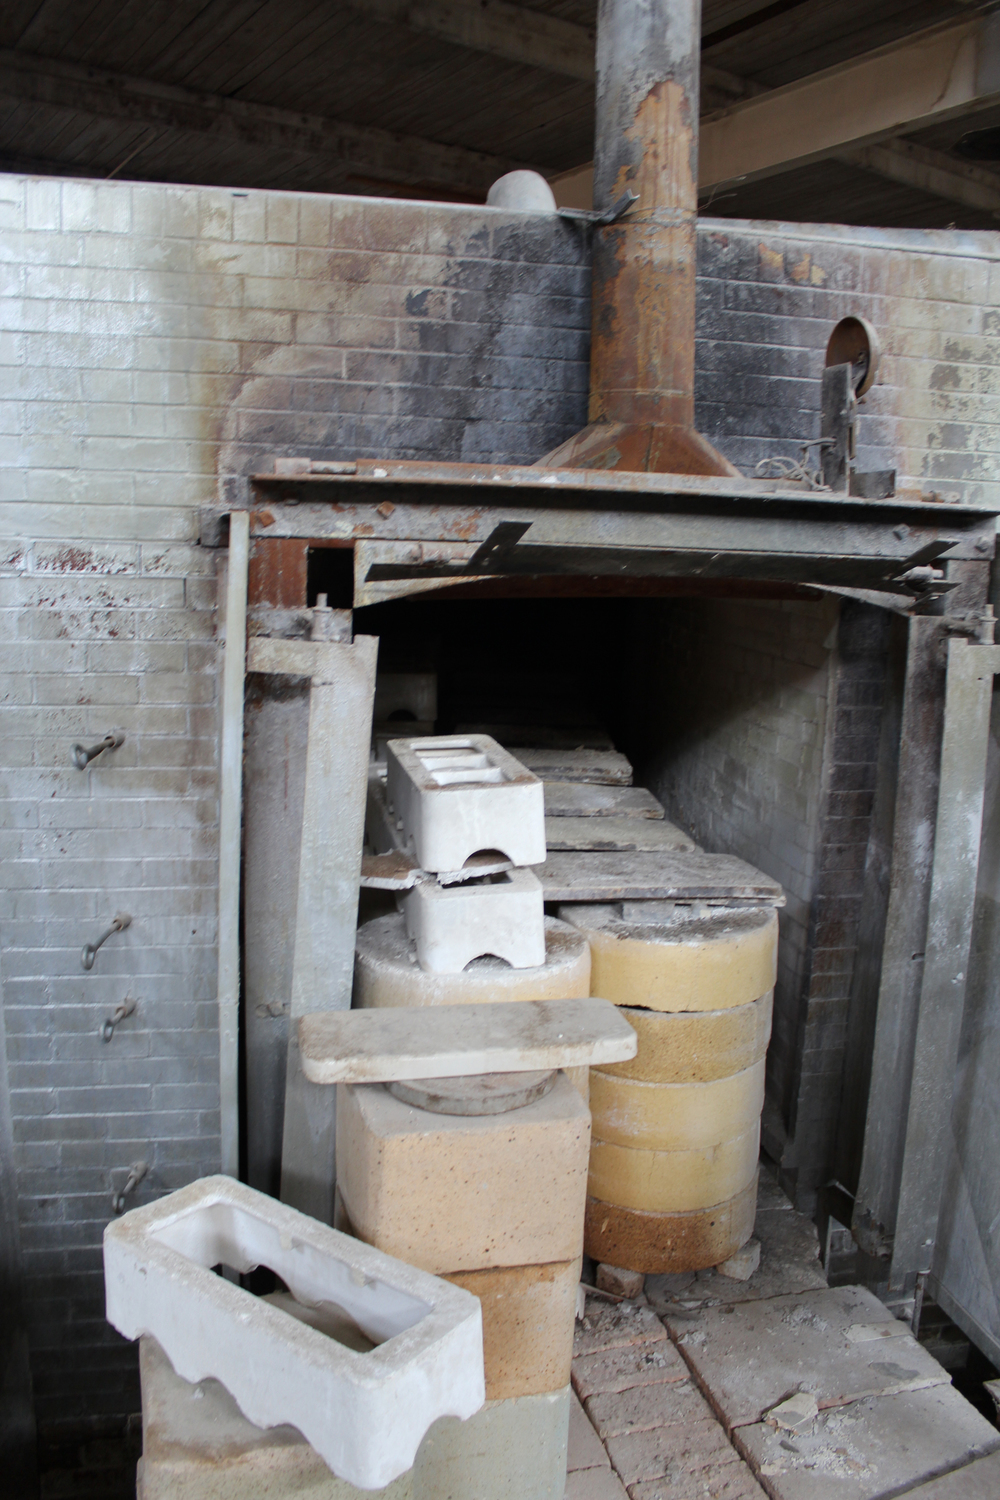 Kiln filled with saggars (which contain bisqued or glazed work that has been stacked inside with stilts)